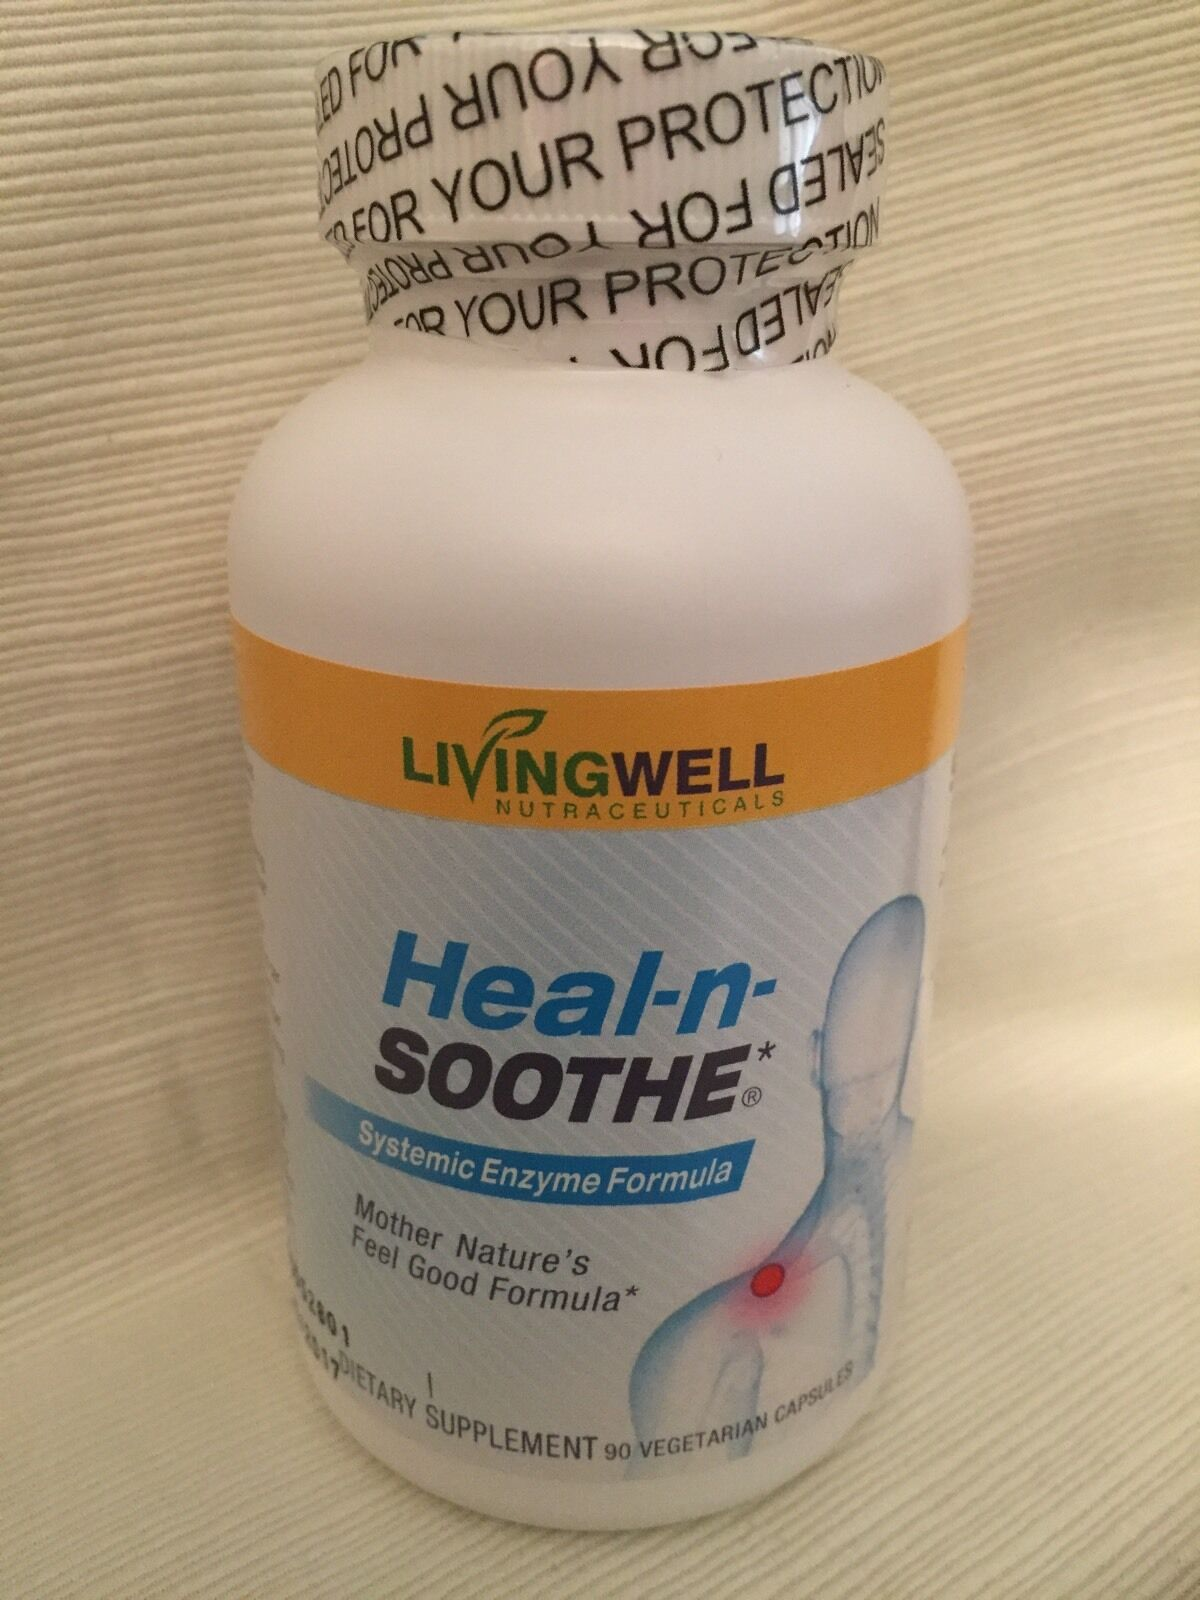 Купить Heal-N-Soothe Systemic Enzymes By LIVINGWELL 90 Caps Inflammation/Sinus Health